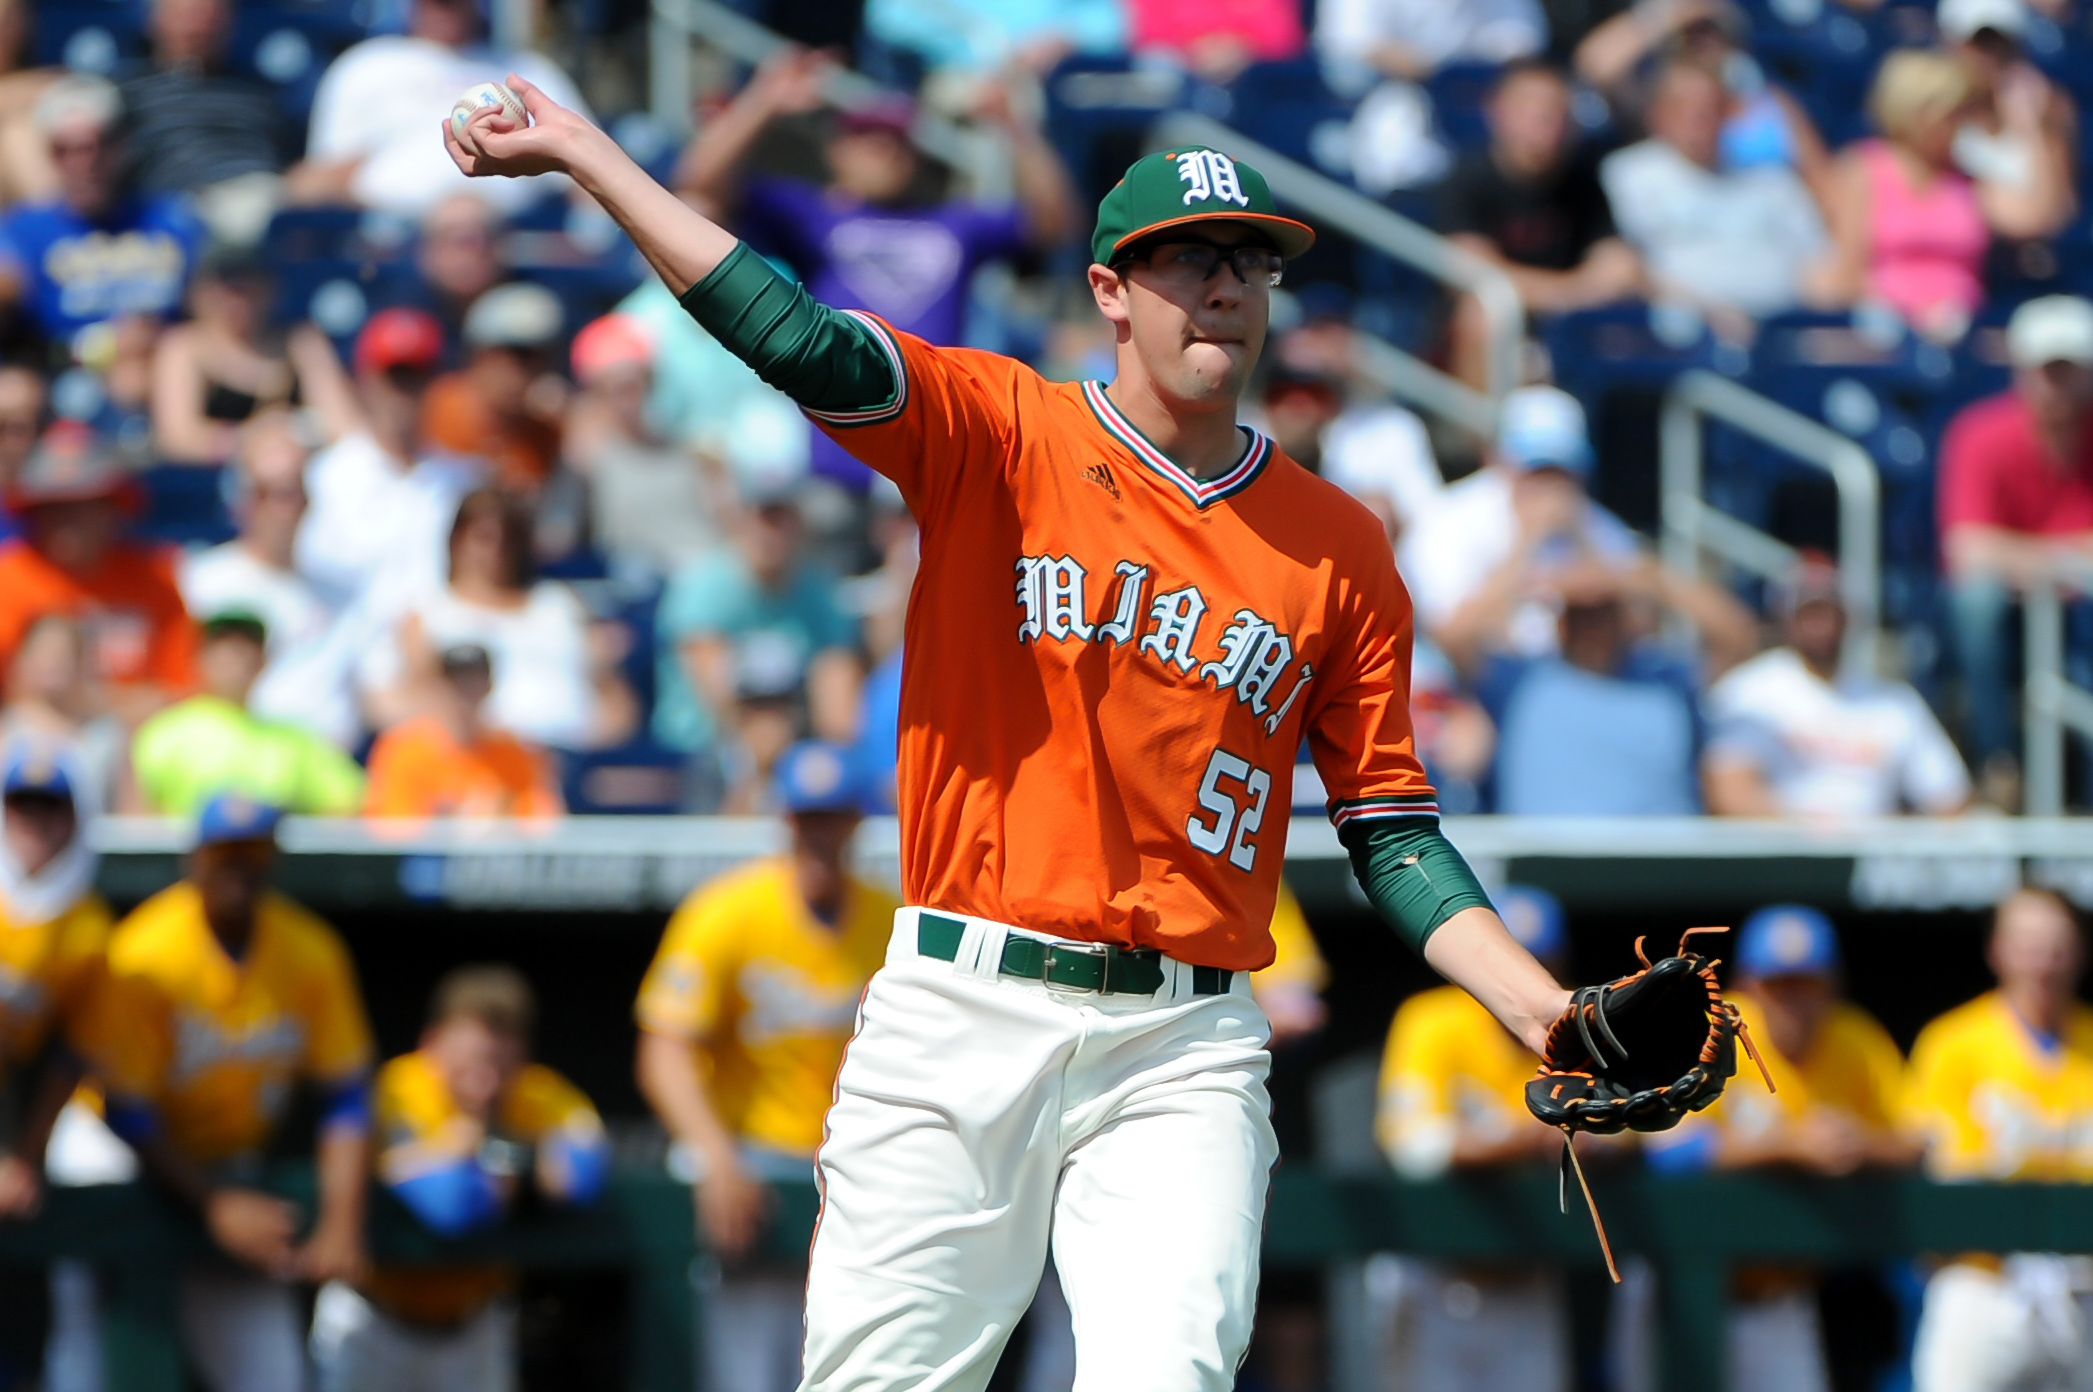 9349972-ncaa-baseball-college-world-series-miami-vs-uc-santa-barbara